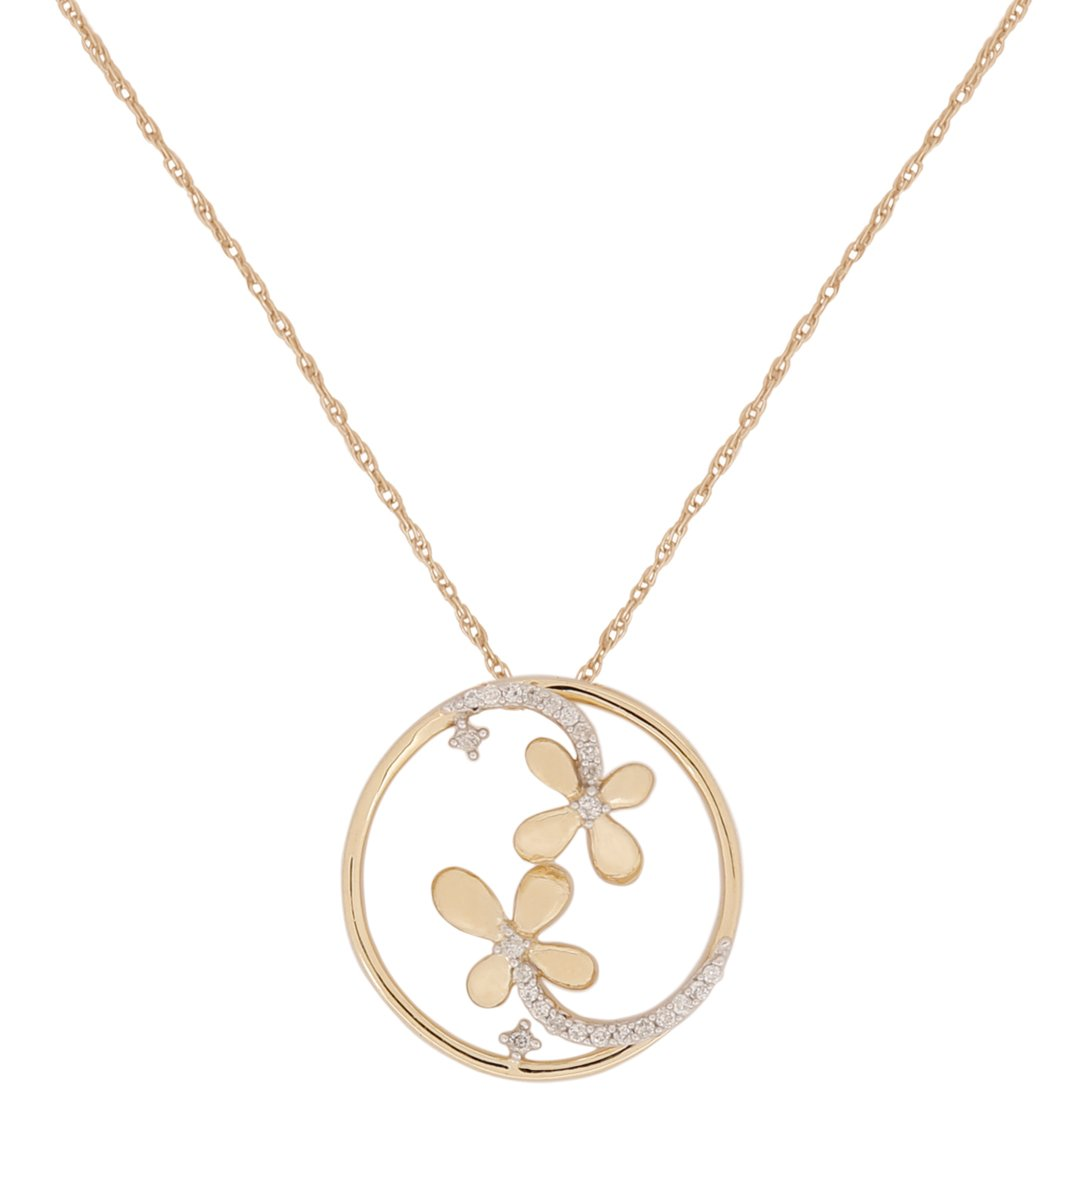 Pendants for Women Tree of Life Girls Necklaces by Store Indya (Gold/Silver/Yellow)